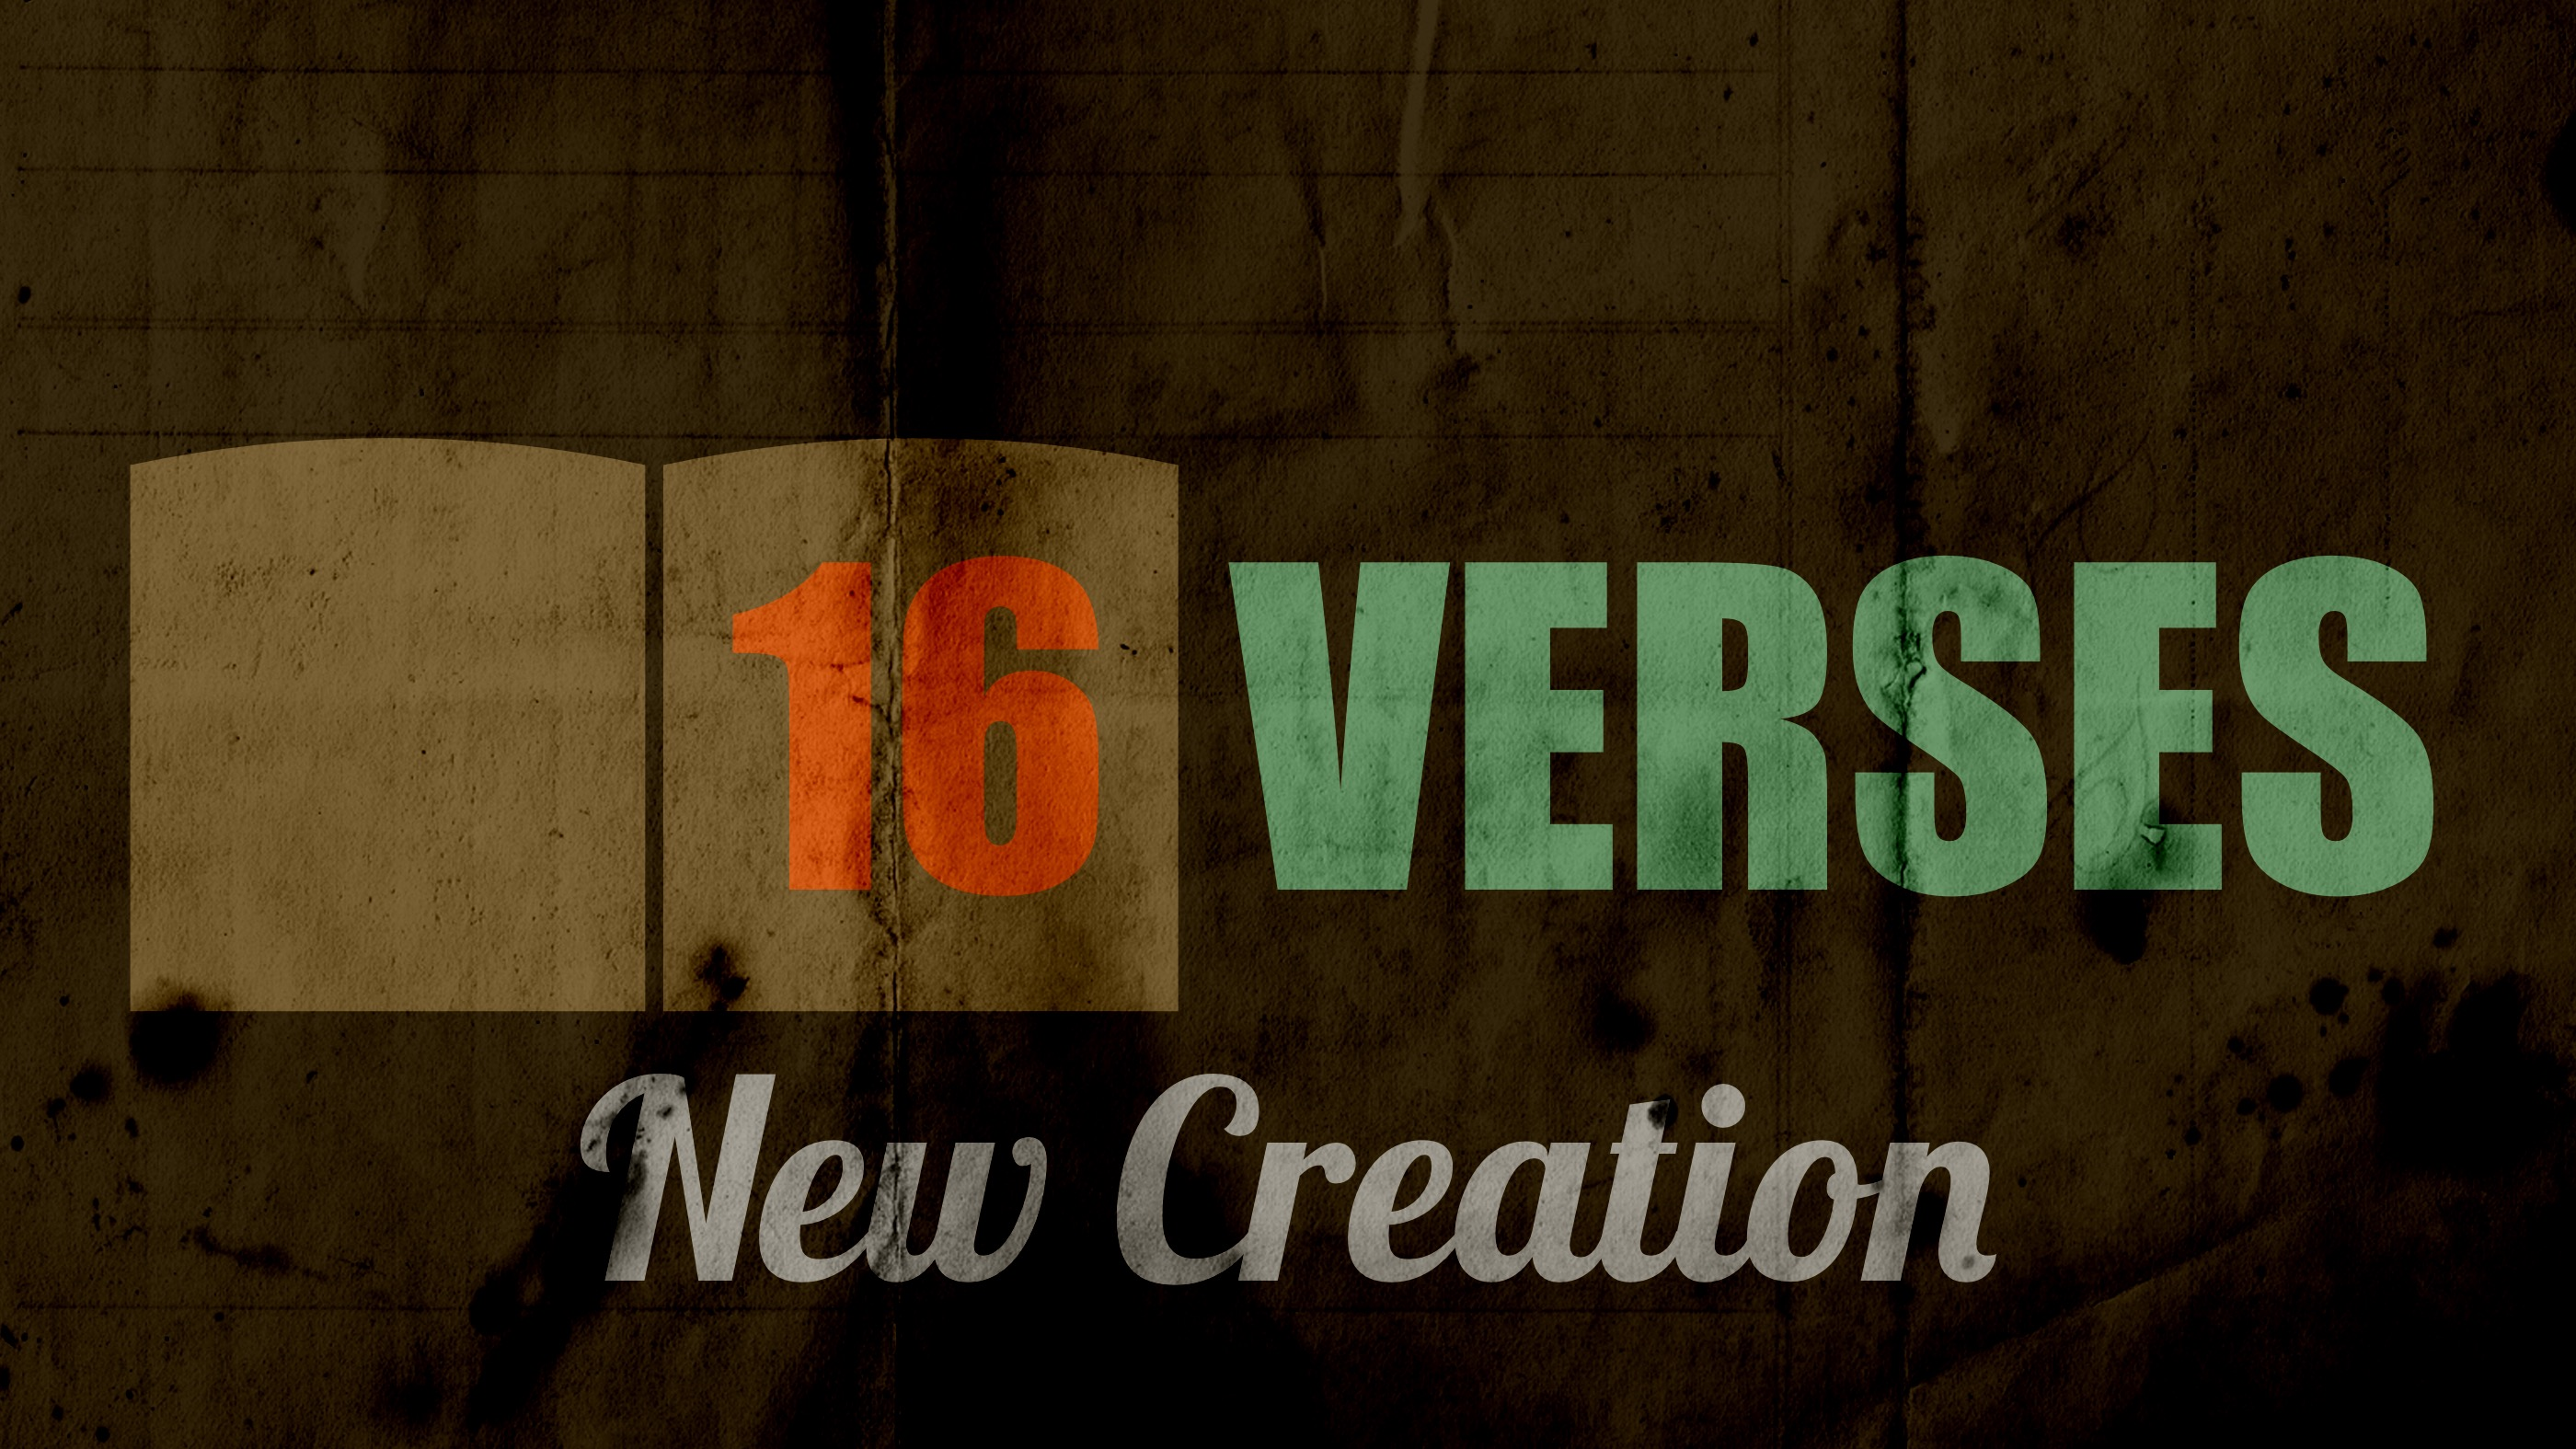 16 VERSES New Creation